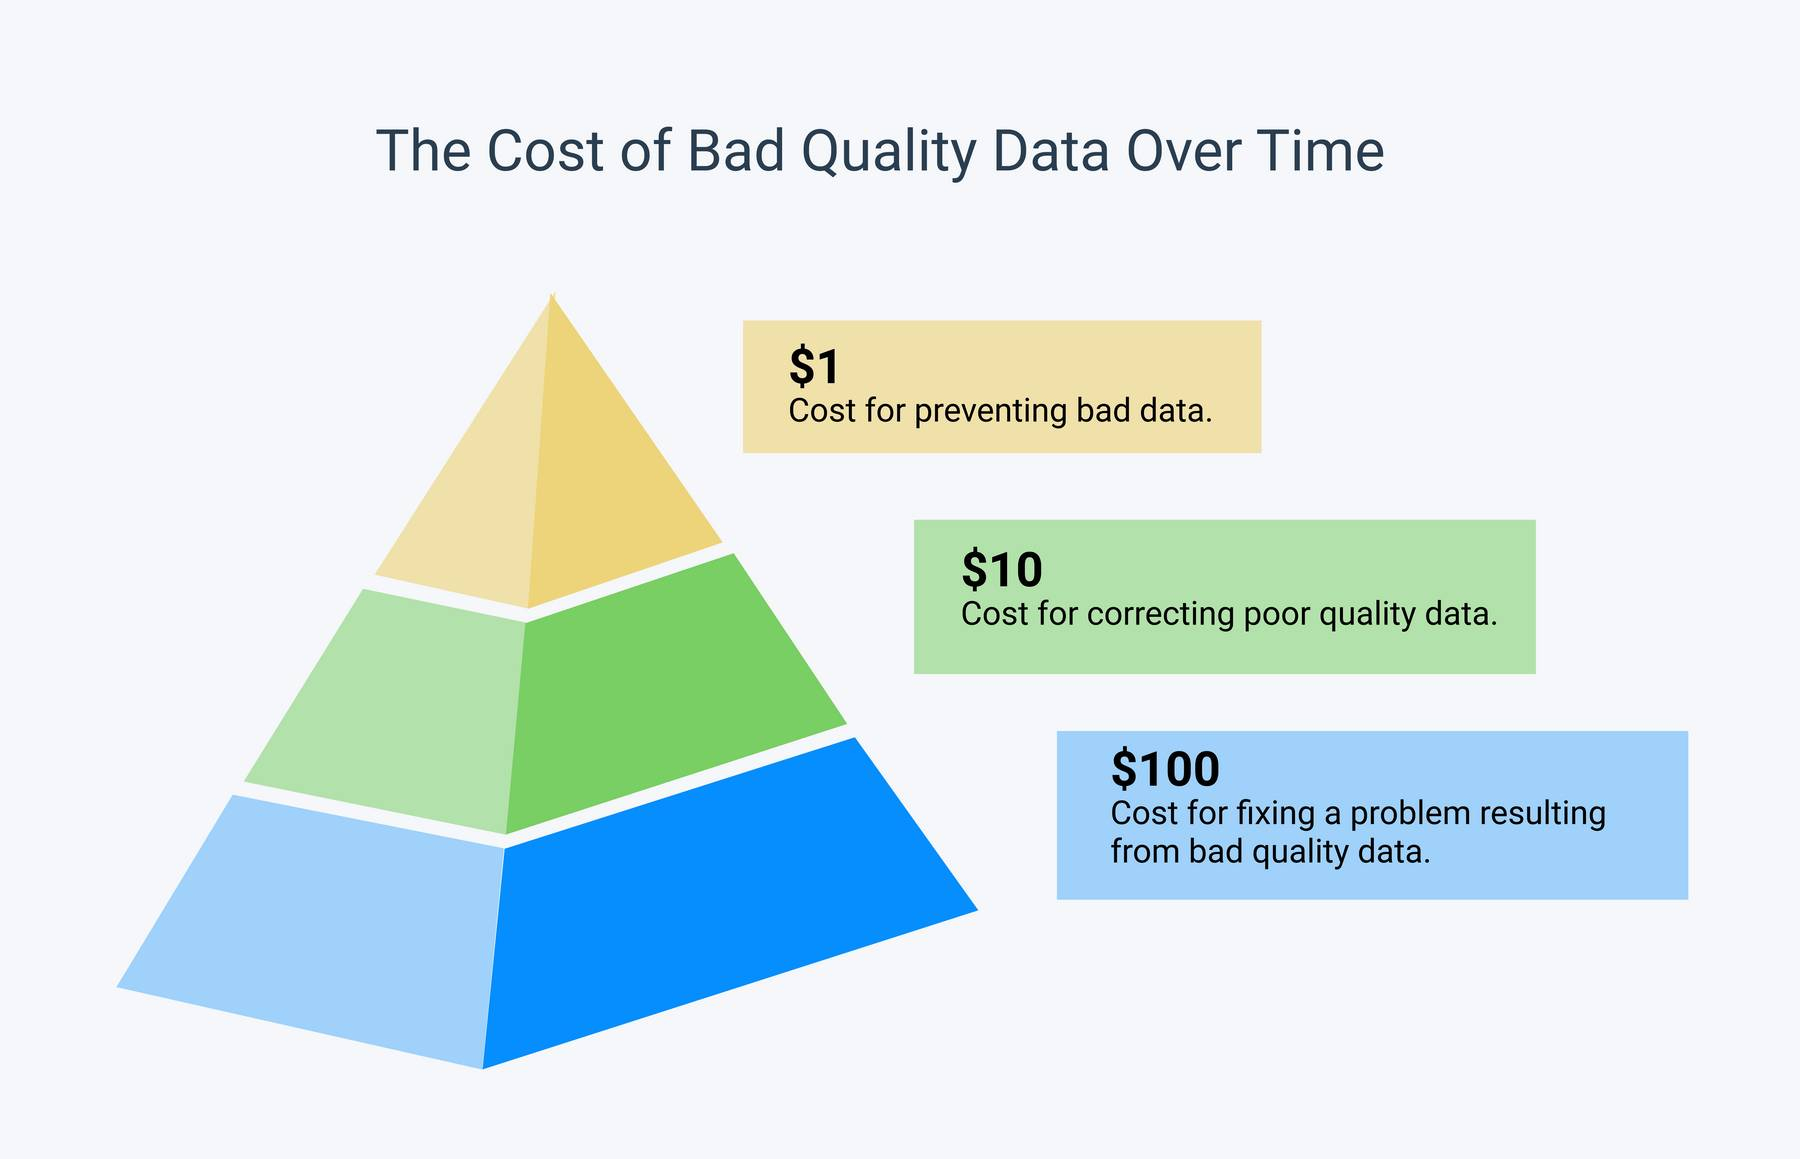 The 1-10-100 principle: $1 to prevent bad data, $10 to fix bad data, $100 to fix a downstream problem created by bad data.